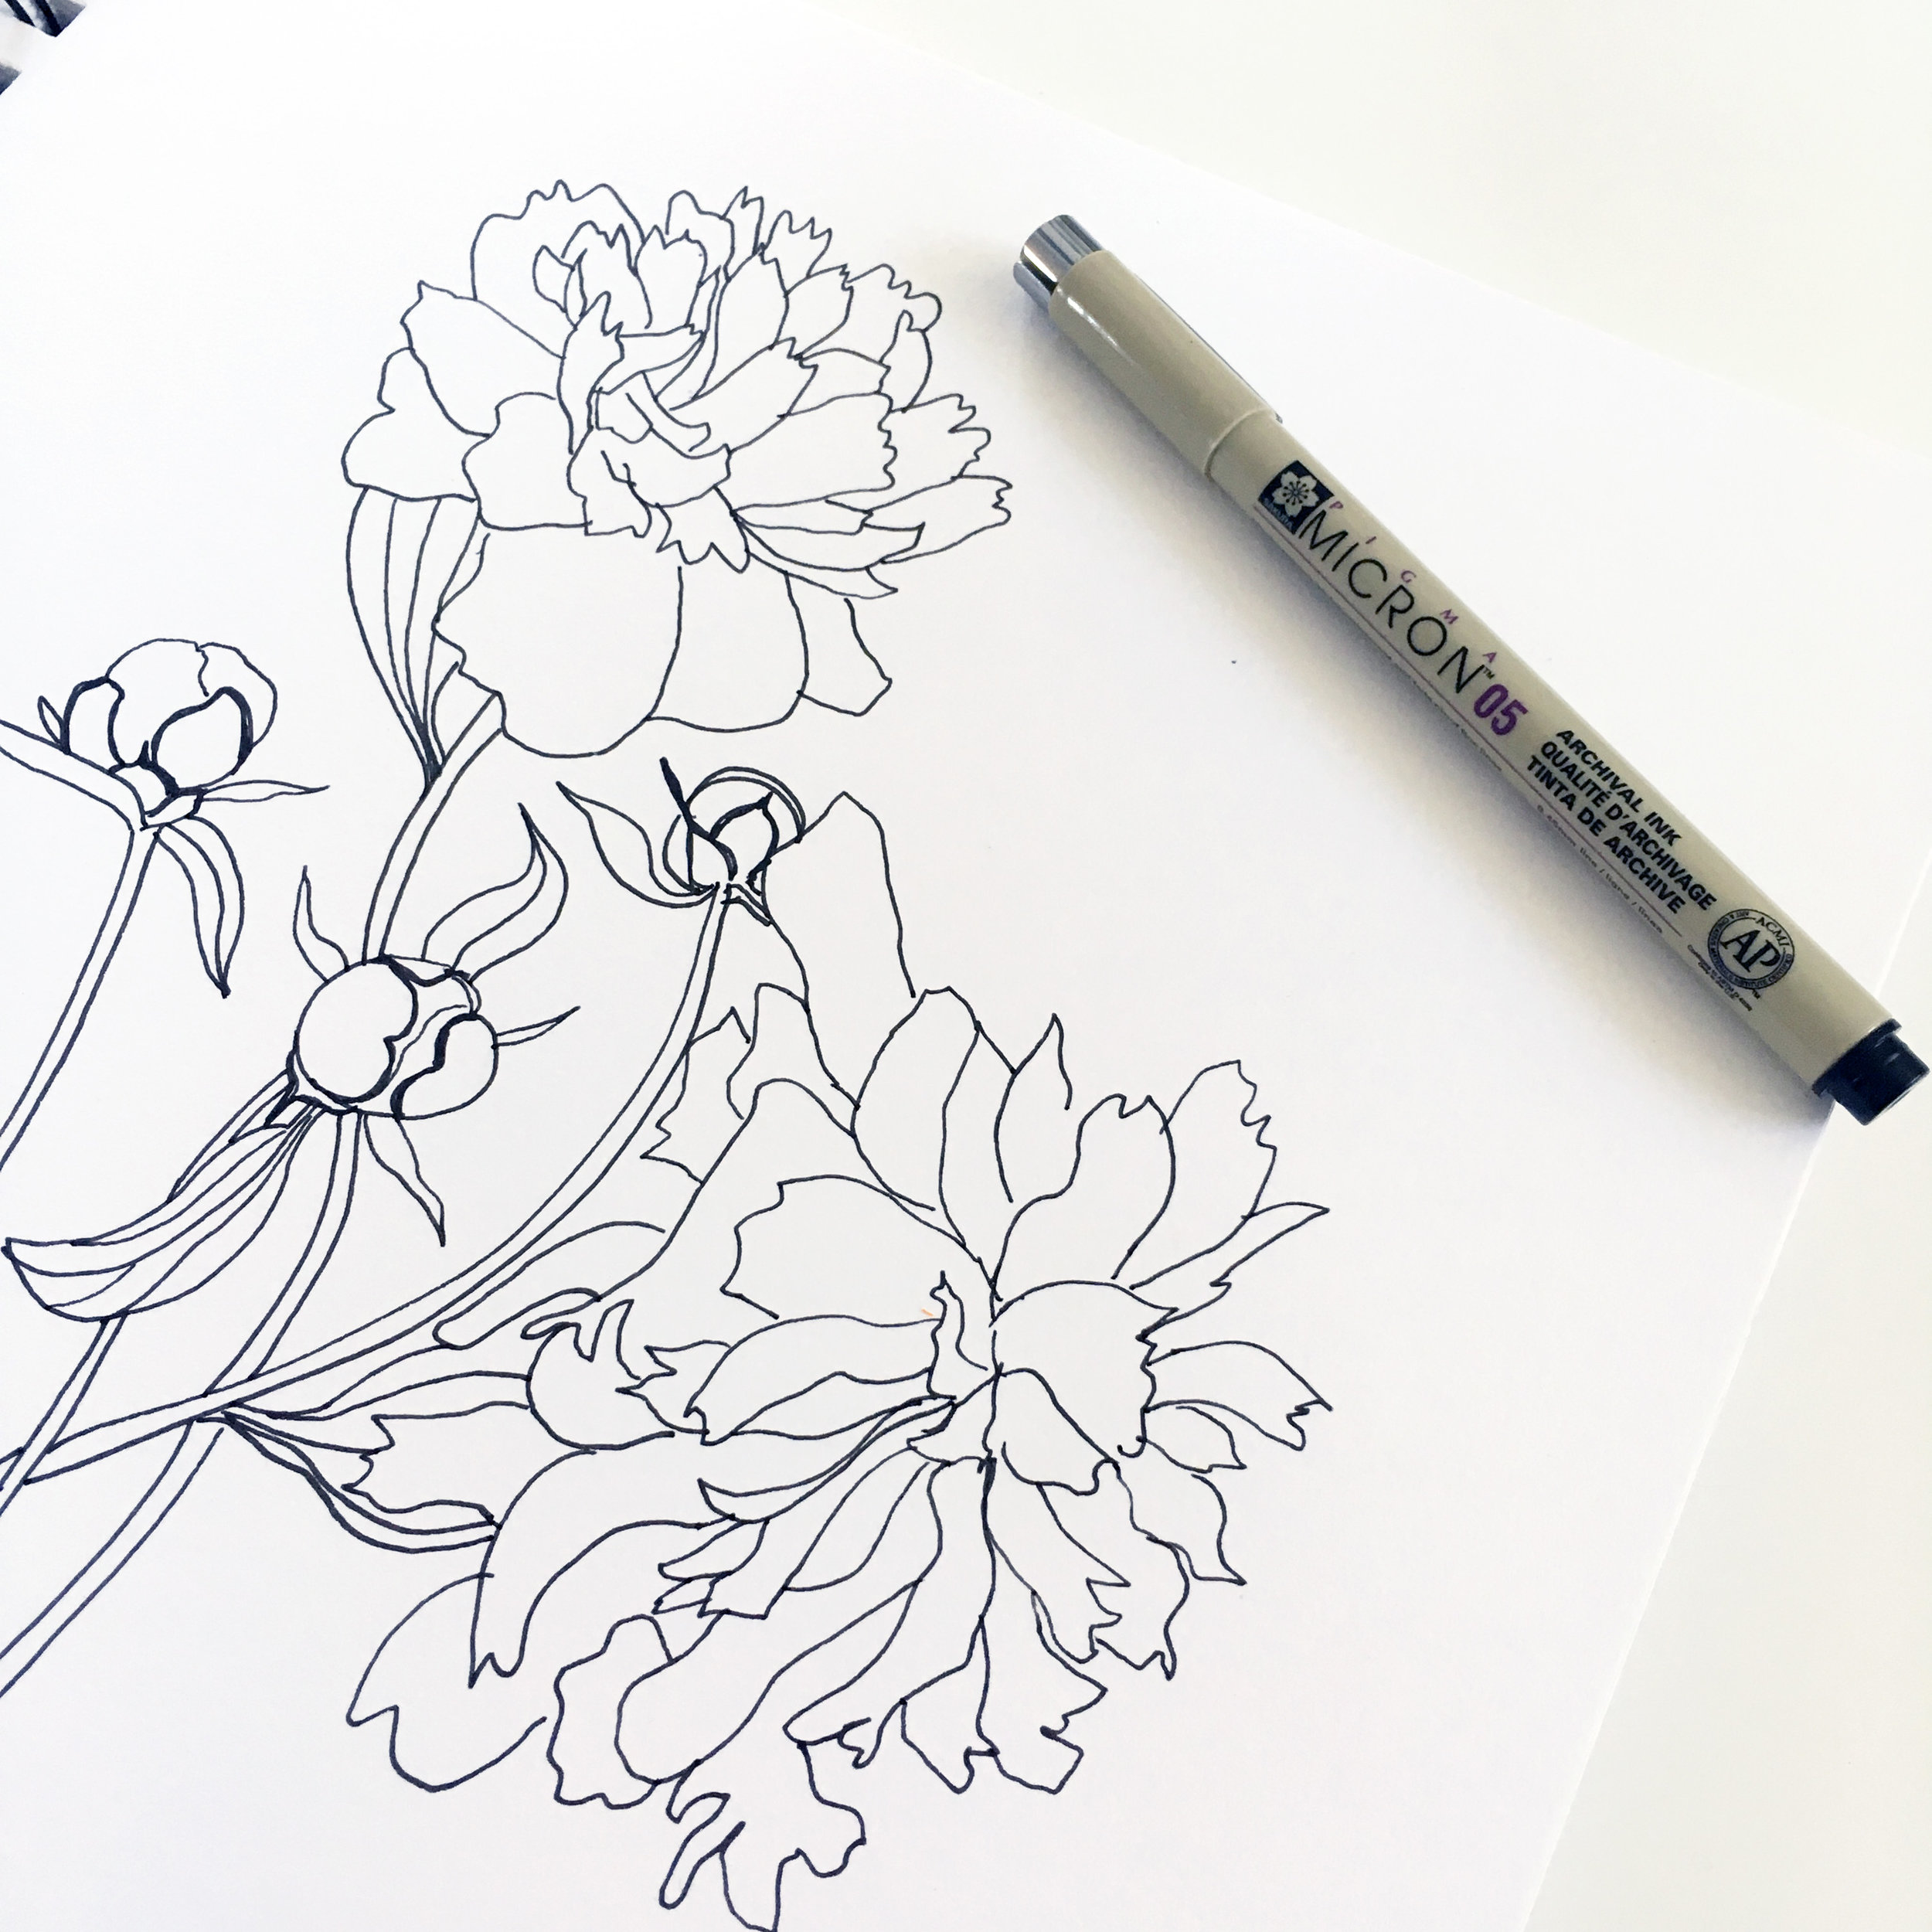 Peony Sketches in Black Micron Pen in Anne Butera's Sketchbook